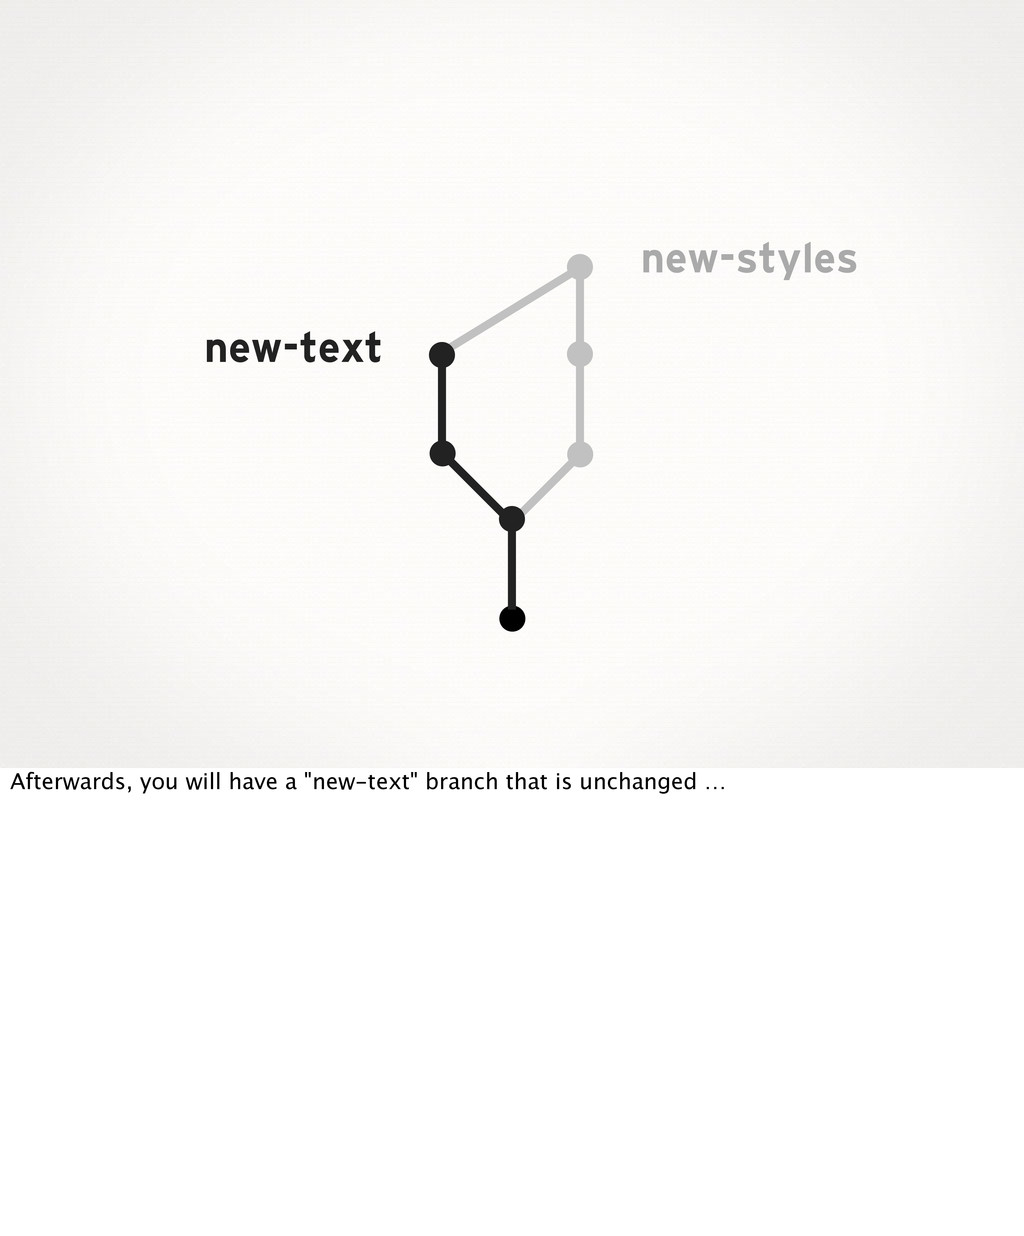 new-styles new-text Afterwards, you will have a...